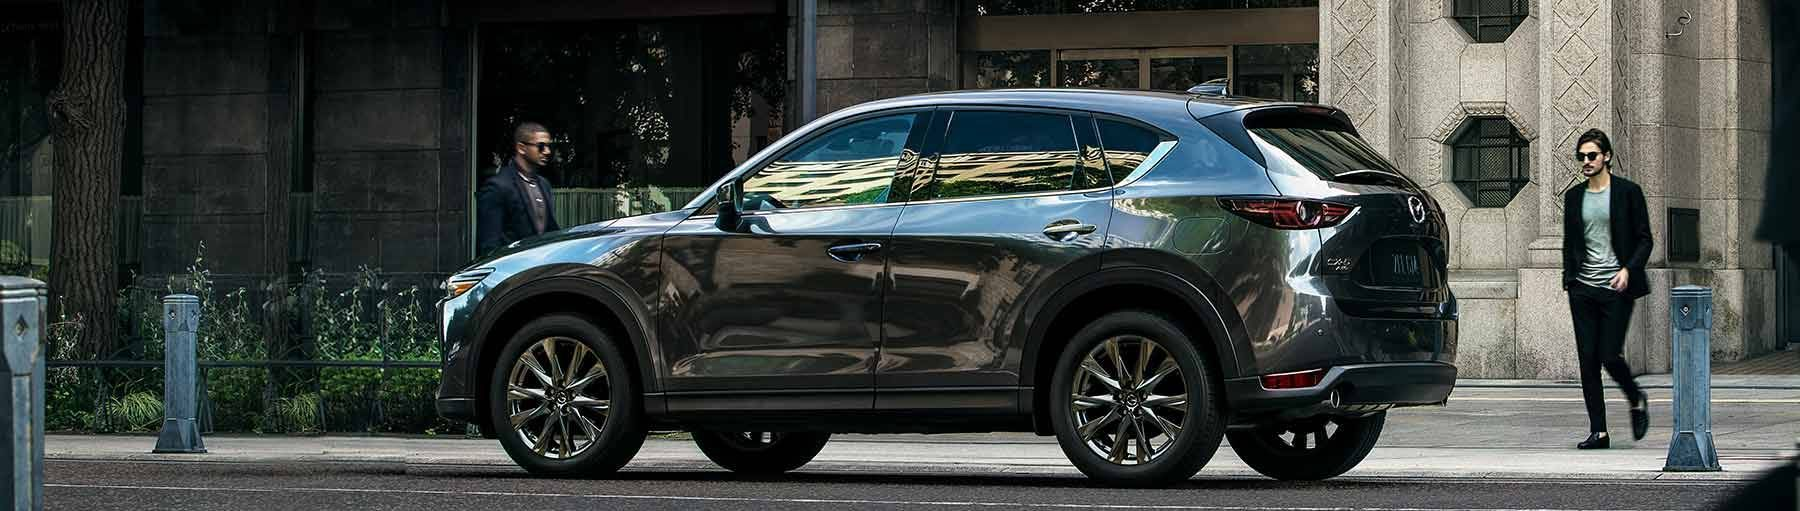 2019 Mazda CX-5 Financing near Clearwater, FL